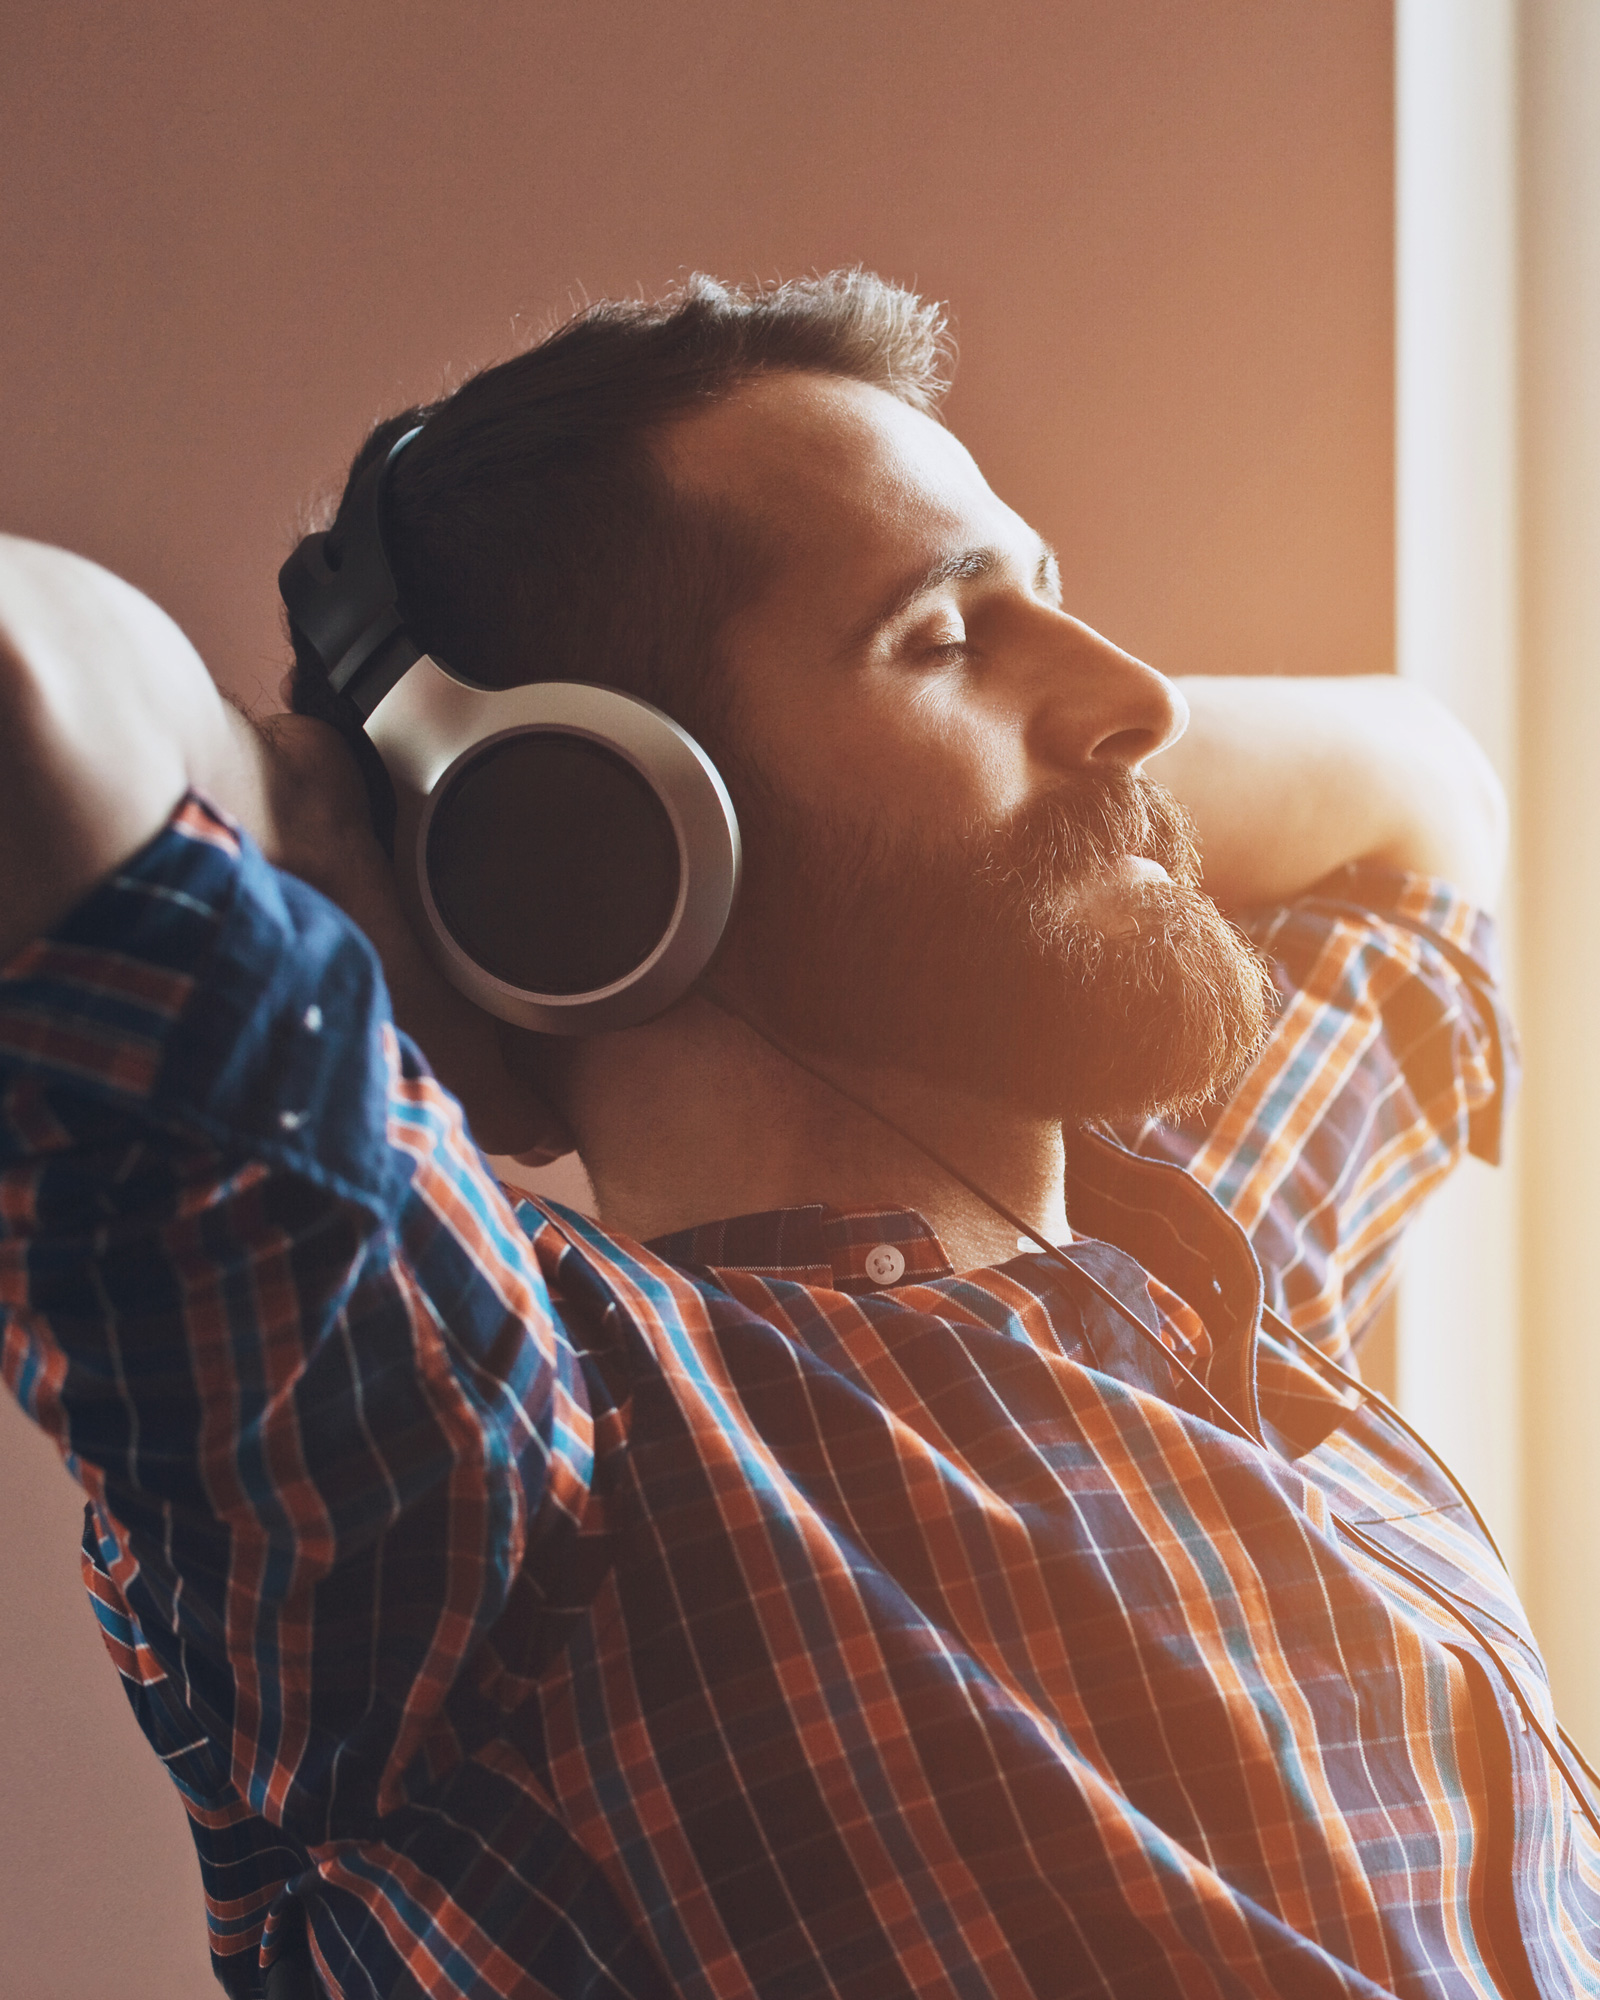 Man listening to music and relaxing